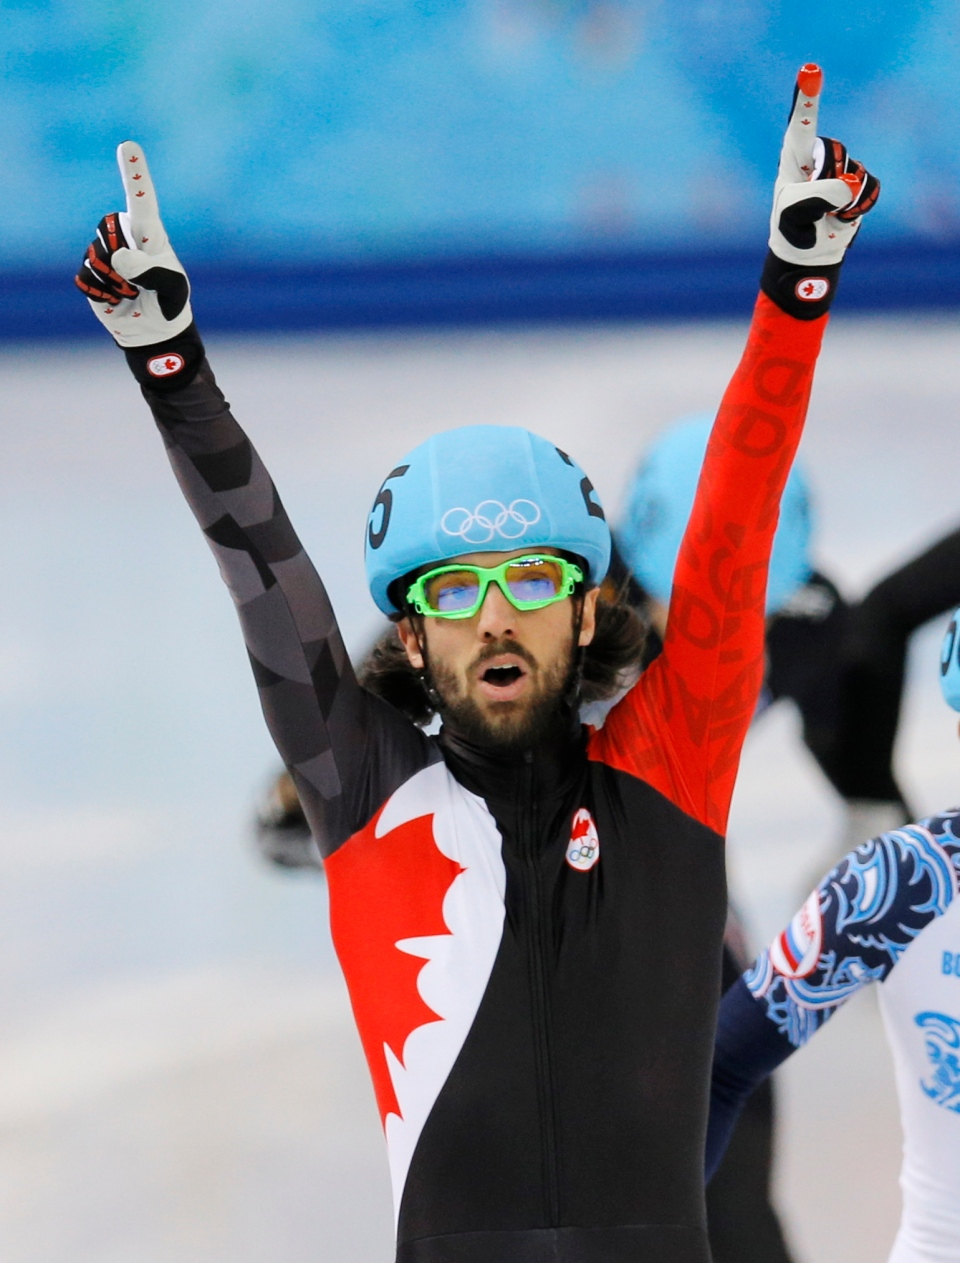 Charles Hamelin of Canada celebrates after winning the men's 1500m short track speedskating final at the Iceberg Skating Palace during the 2014 Winter Olympics, Monday, Feb. 10, 2014, in Sochi, Russia. (AP Photo/Vadim Ghirda)